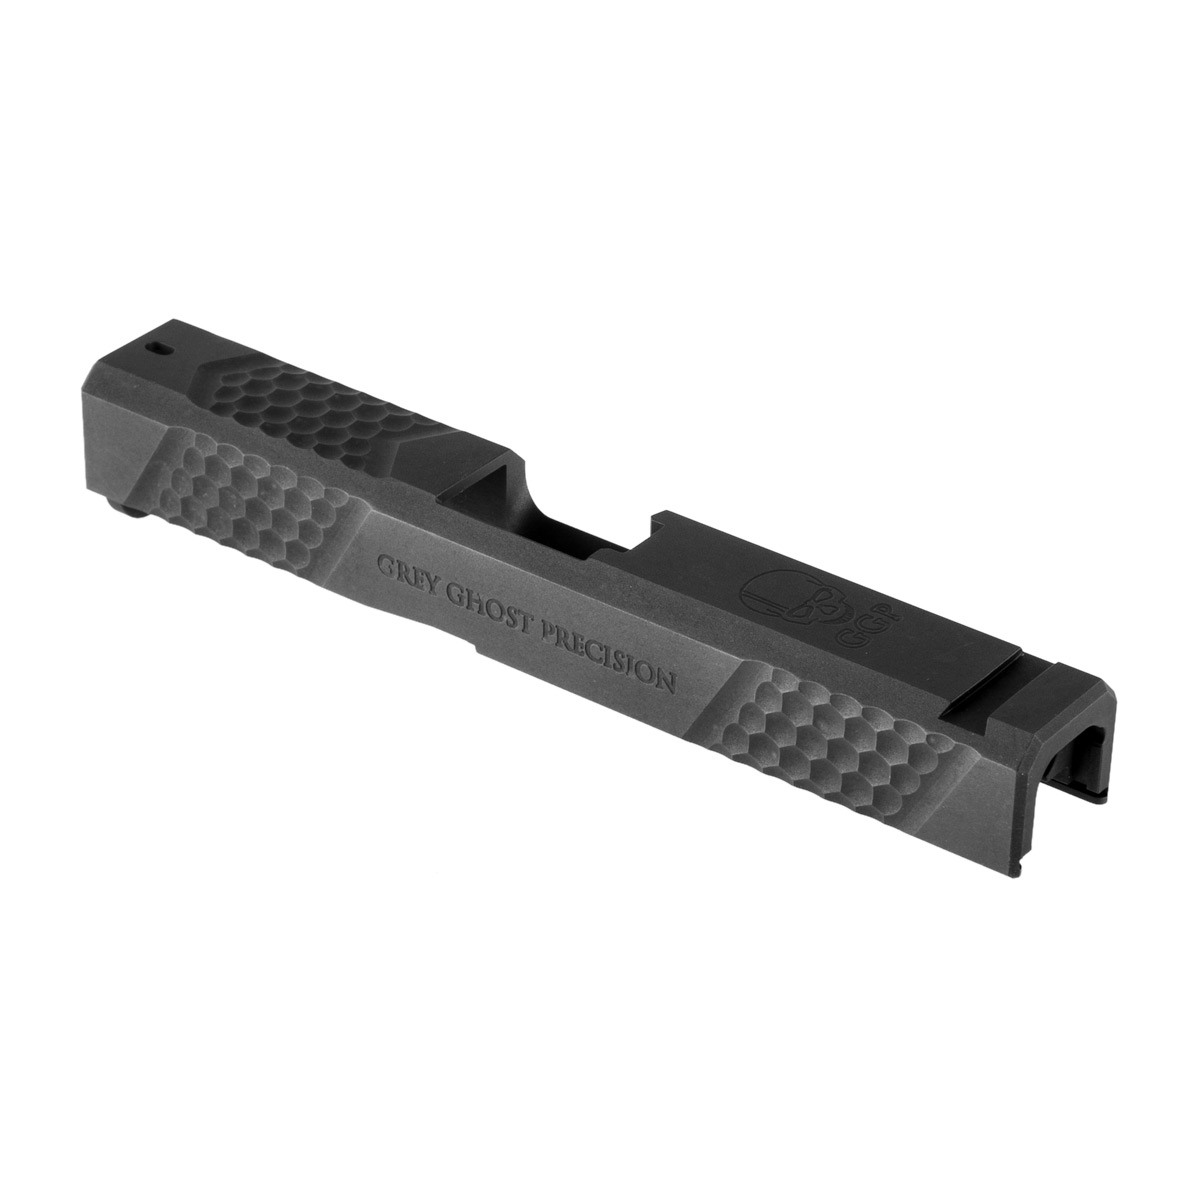 Grey Ghost RMR Slide for Gen 3 Glock™ 19 SS Nitride